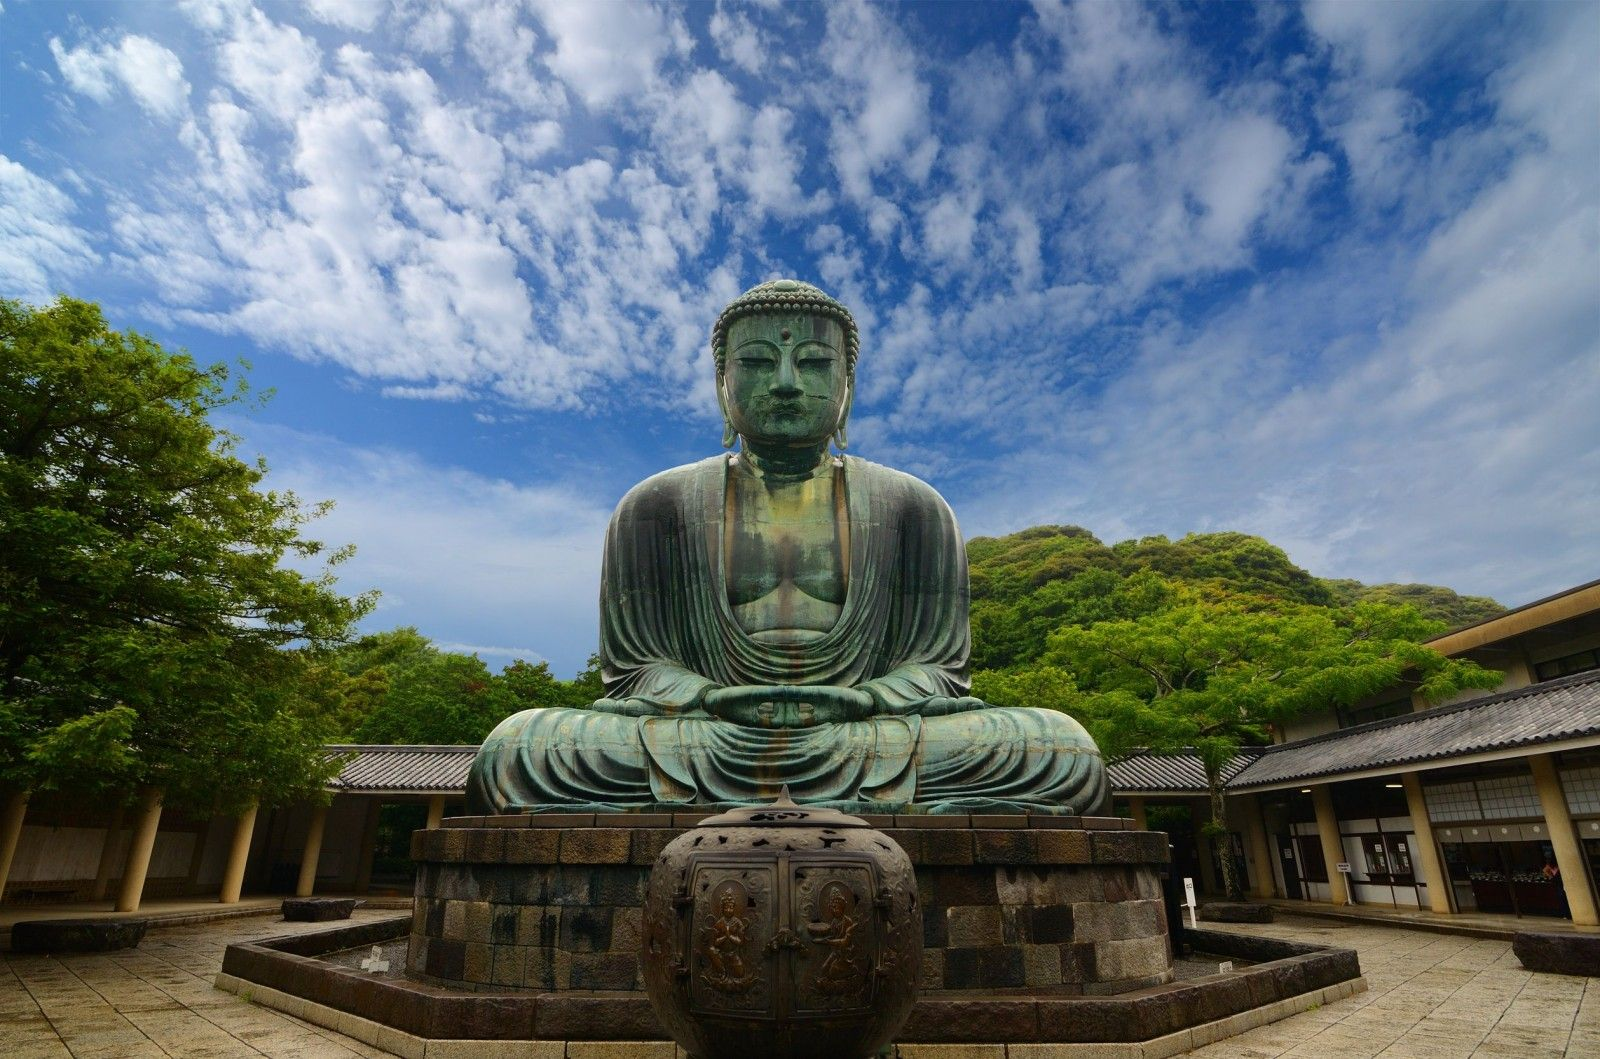 Lord buddha images for mobile 6